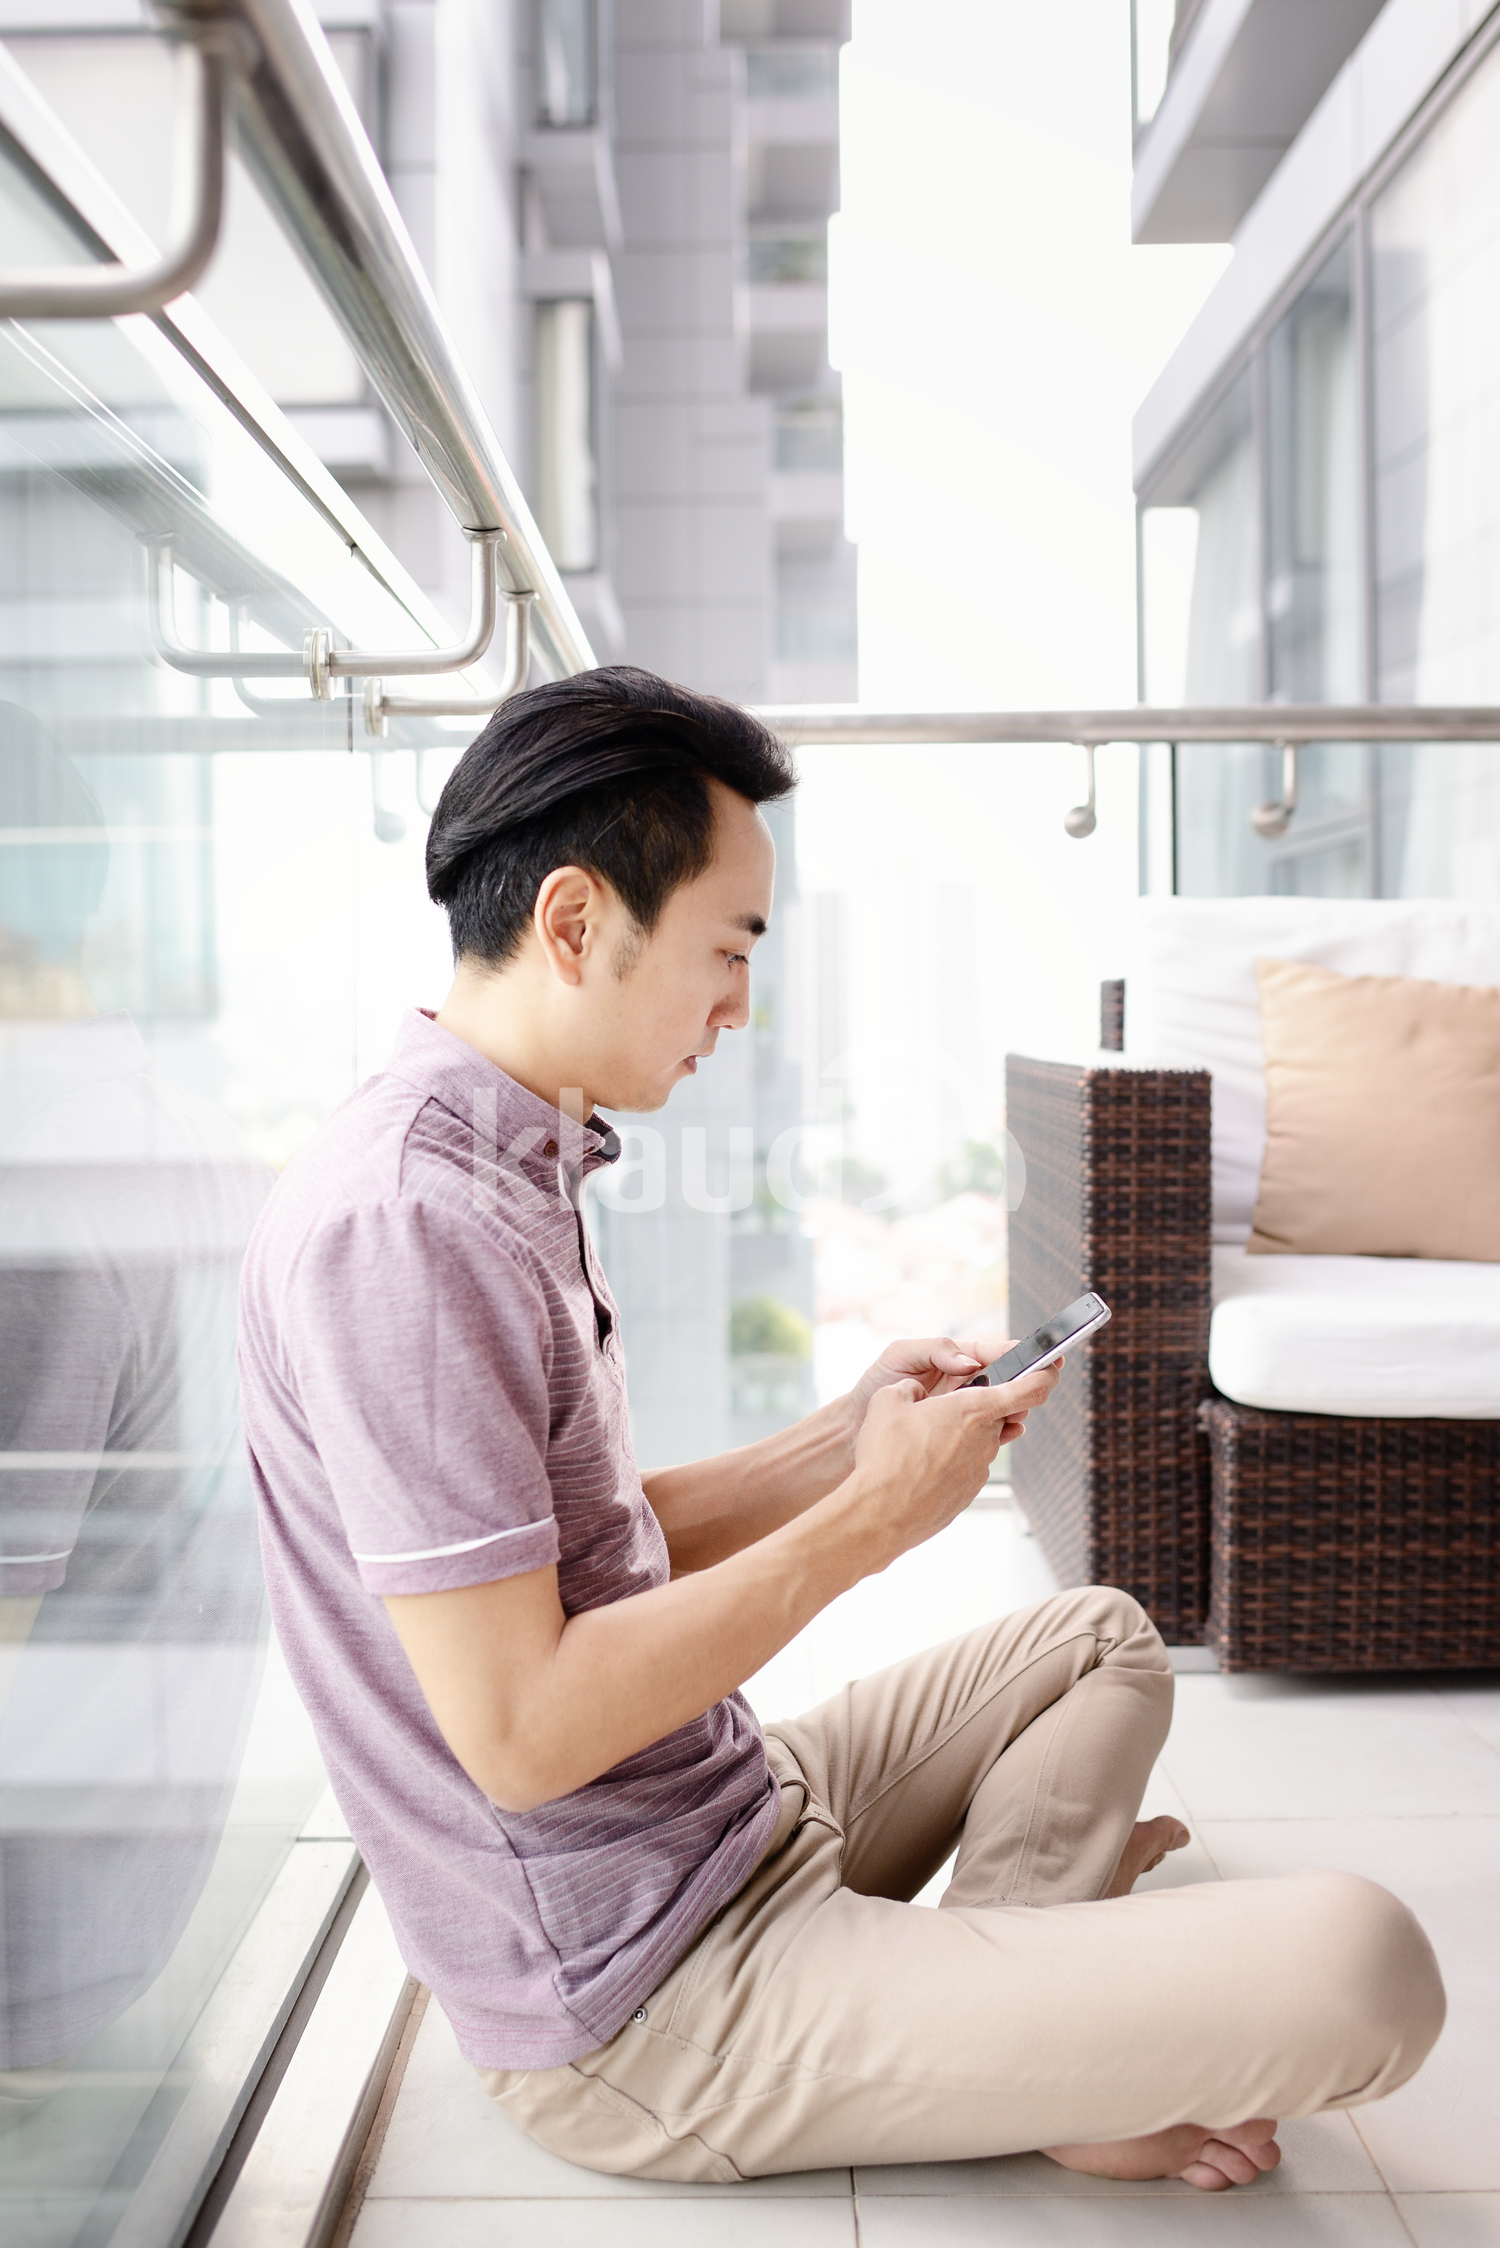 Young man reading from his smart phone on a condo balcony